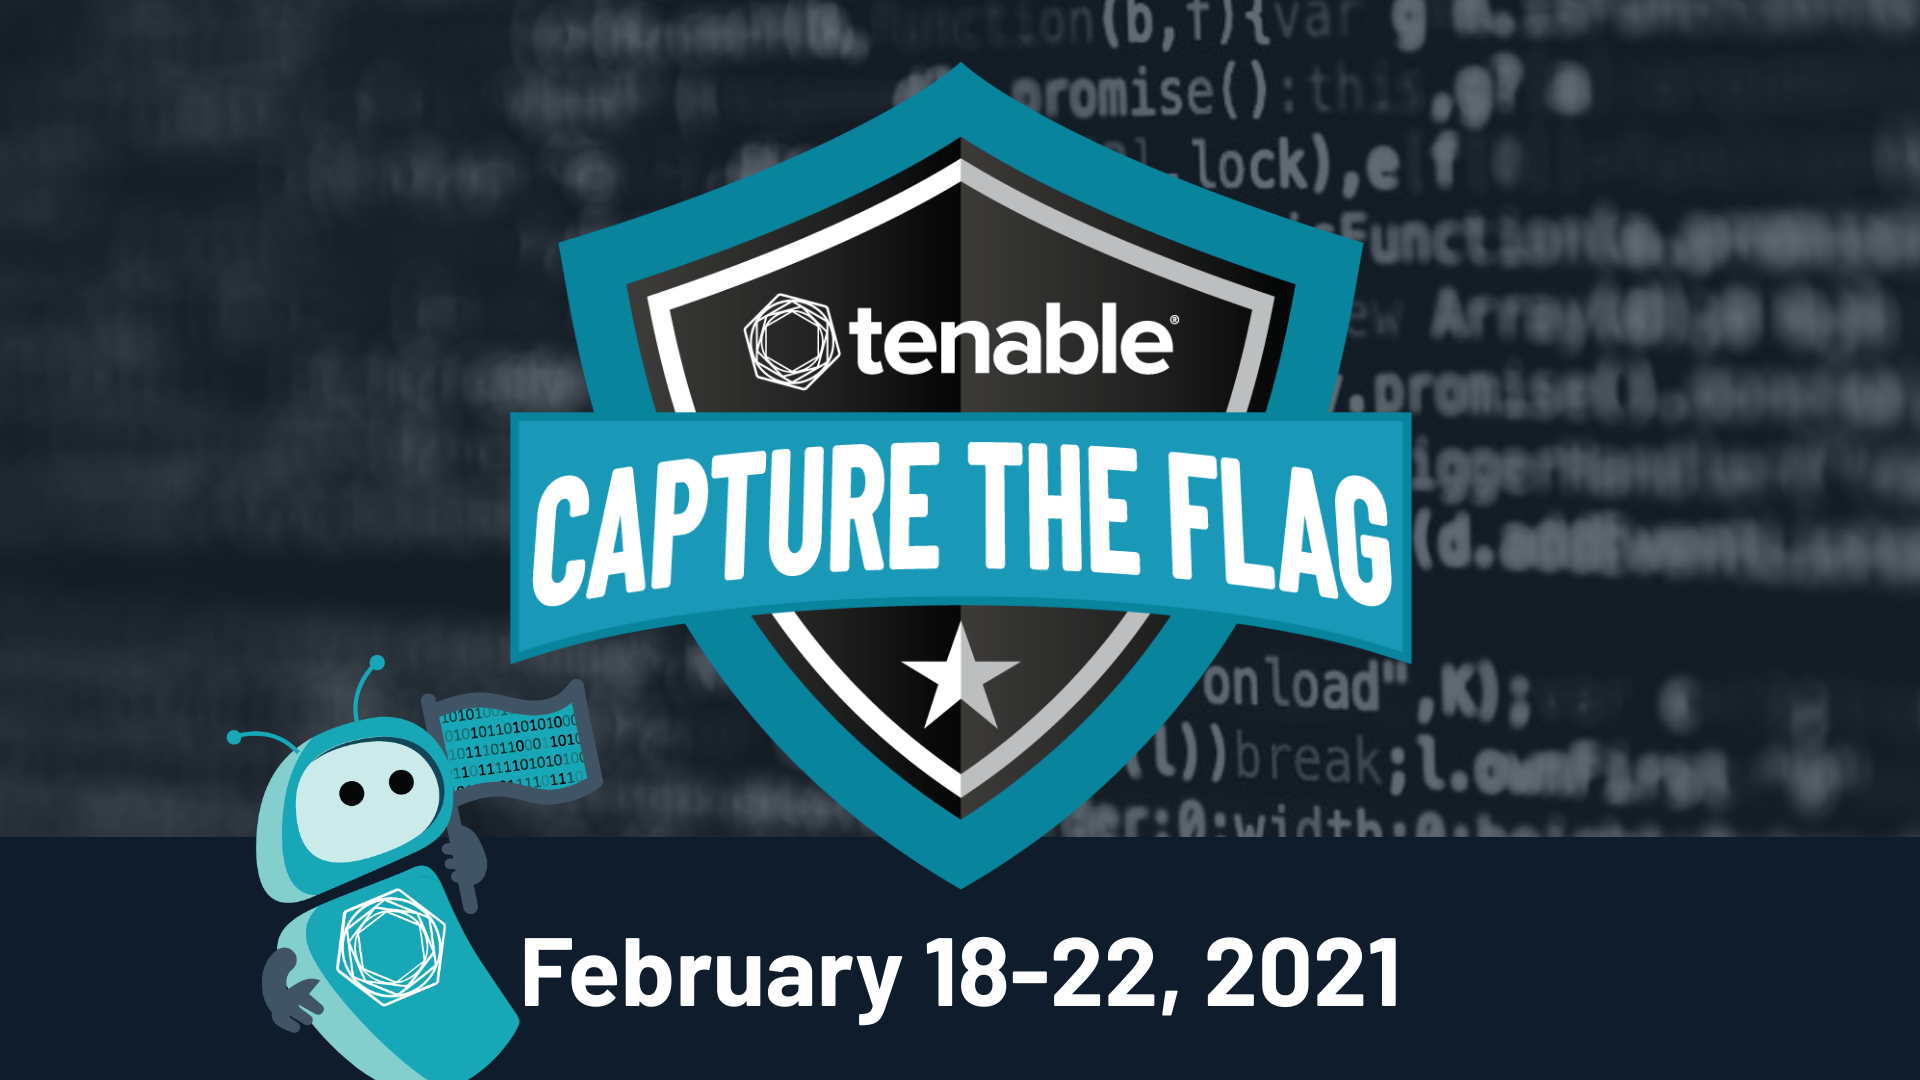 Ready to Test Your Hacking Skills? Join Tenable's First CTF Competition!